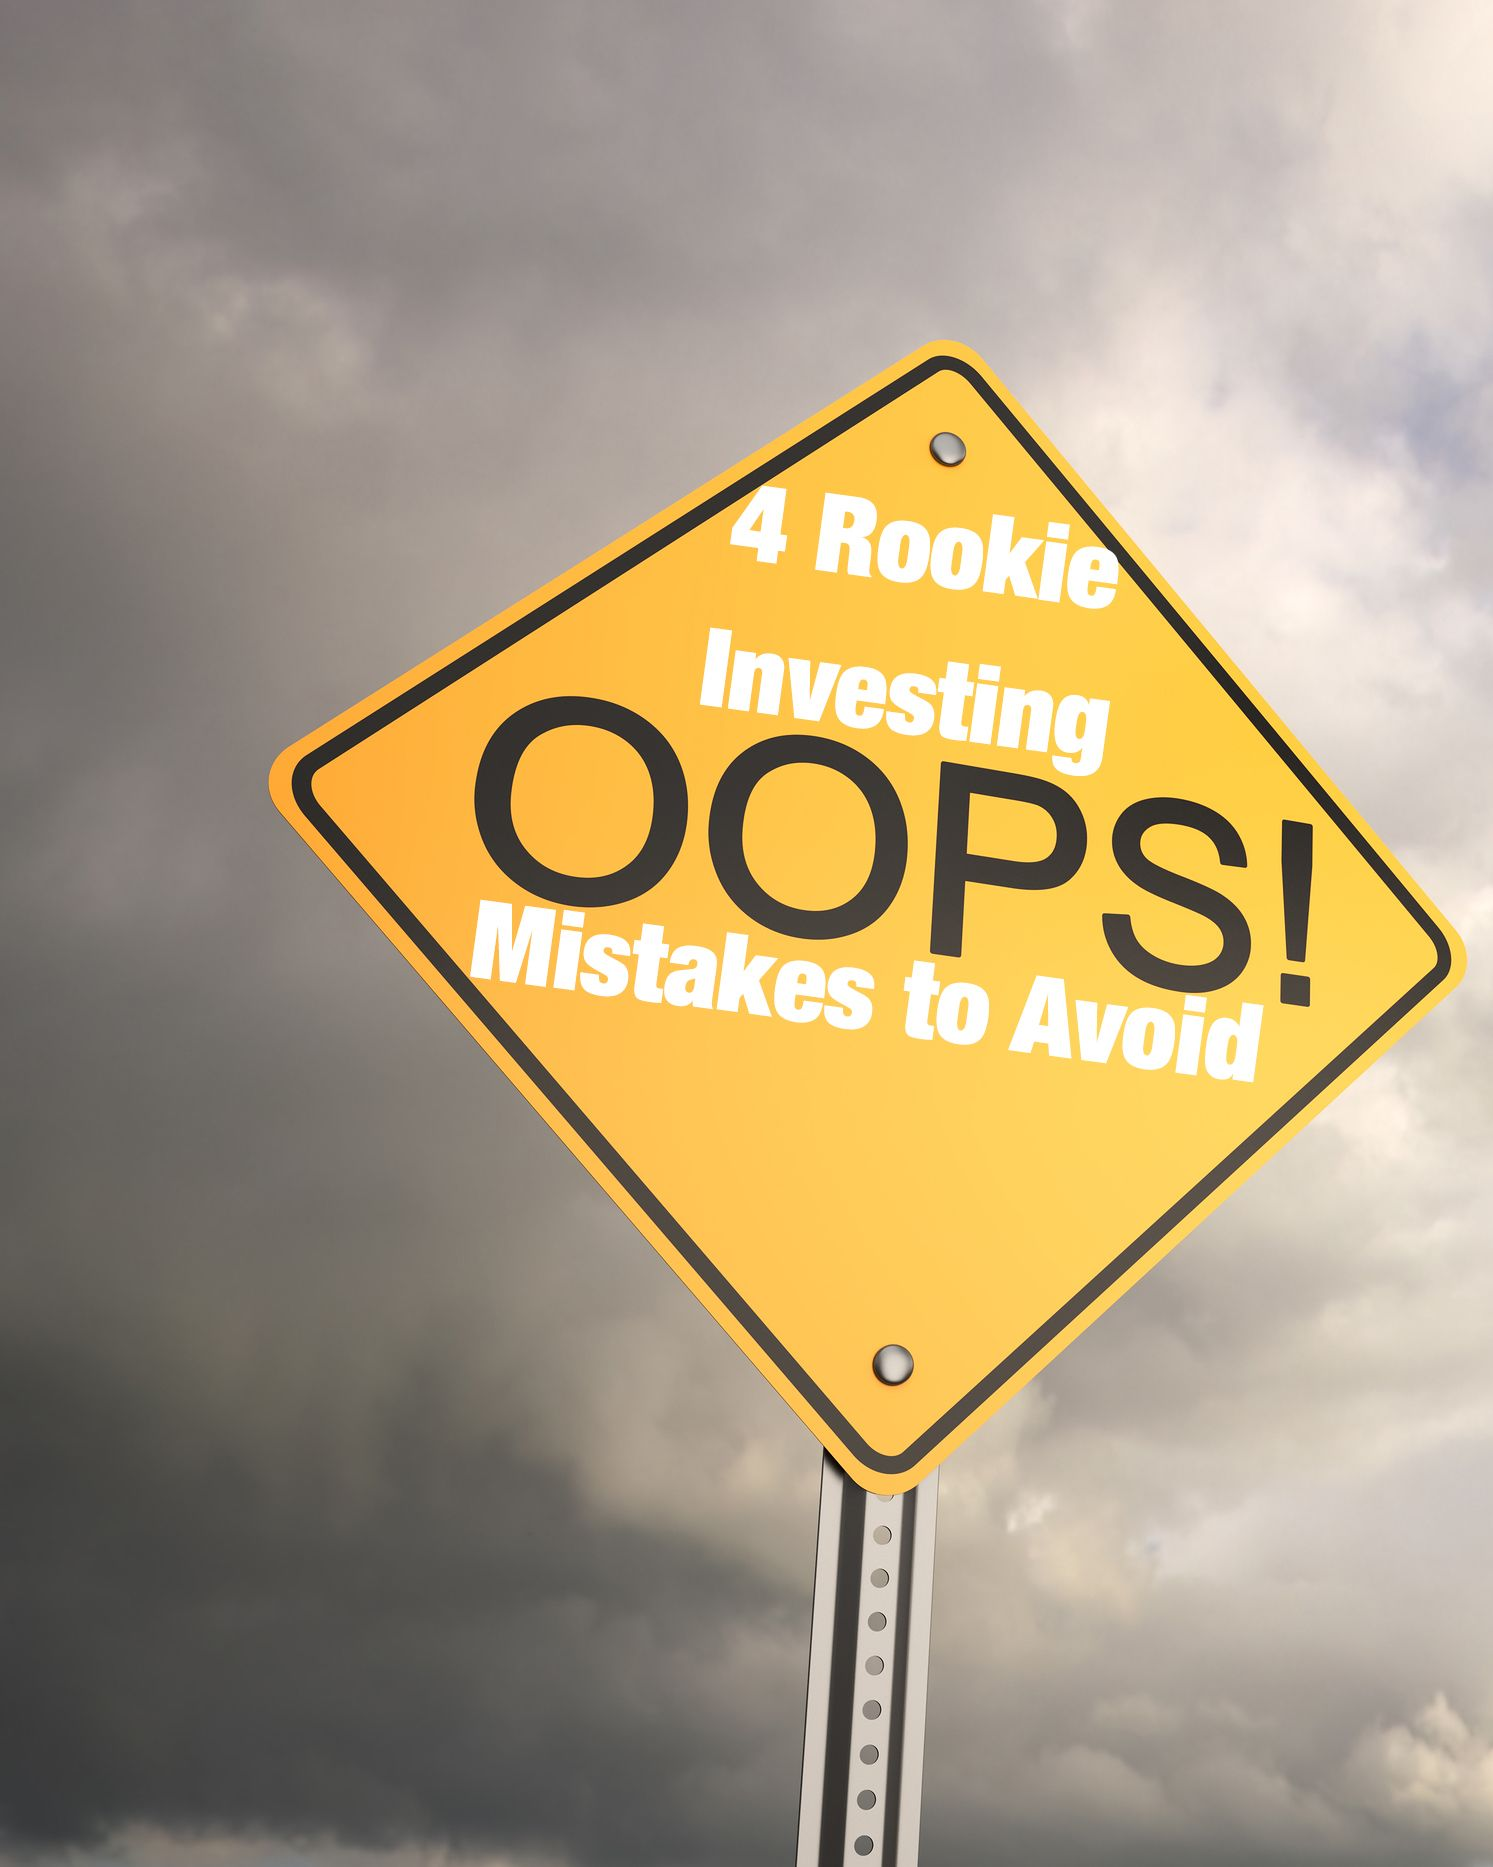 4 Rookie Investing Mistakes To Avoid Trucrowd